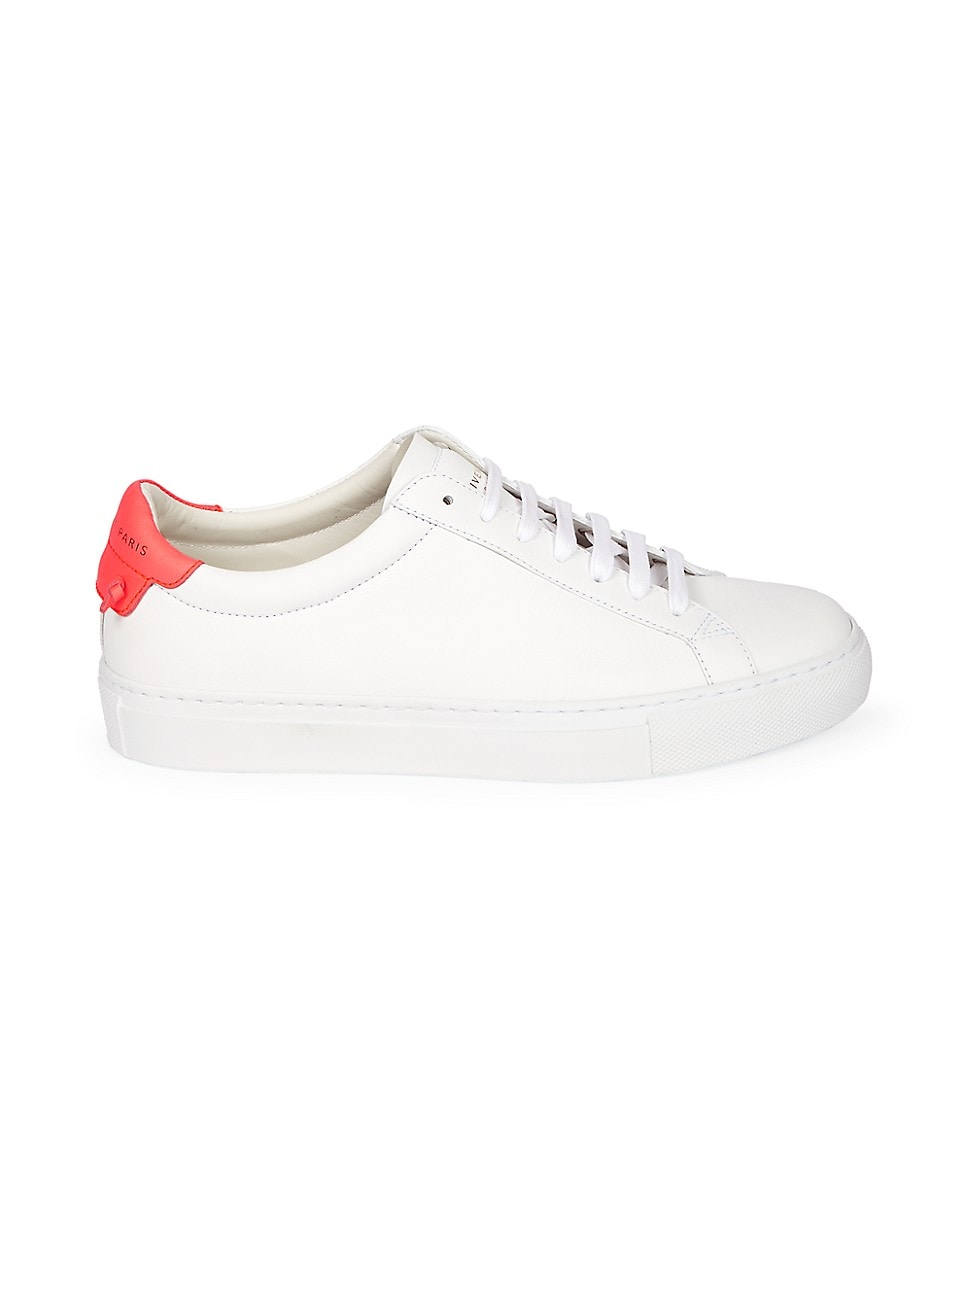 Givenchy Leathers WOMEN'S URBAN STREET LEATHER SNEAKERS